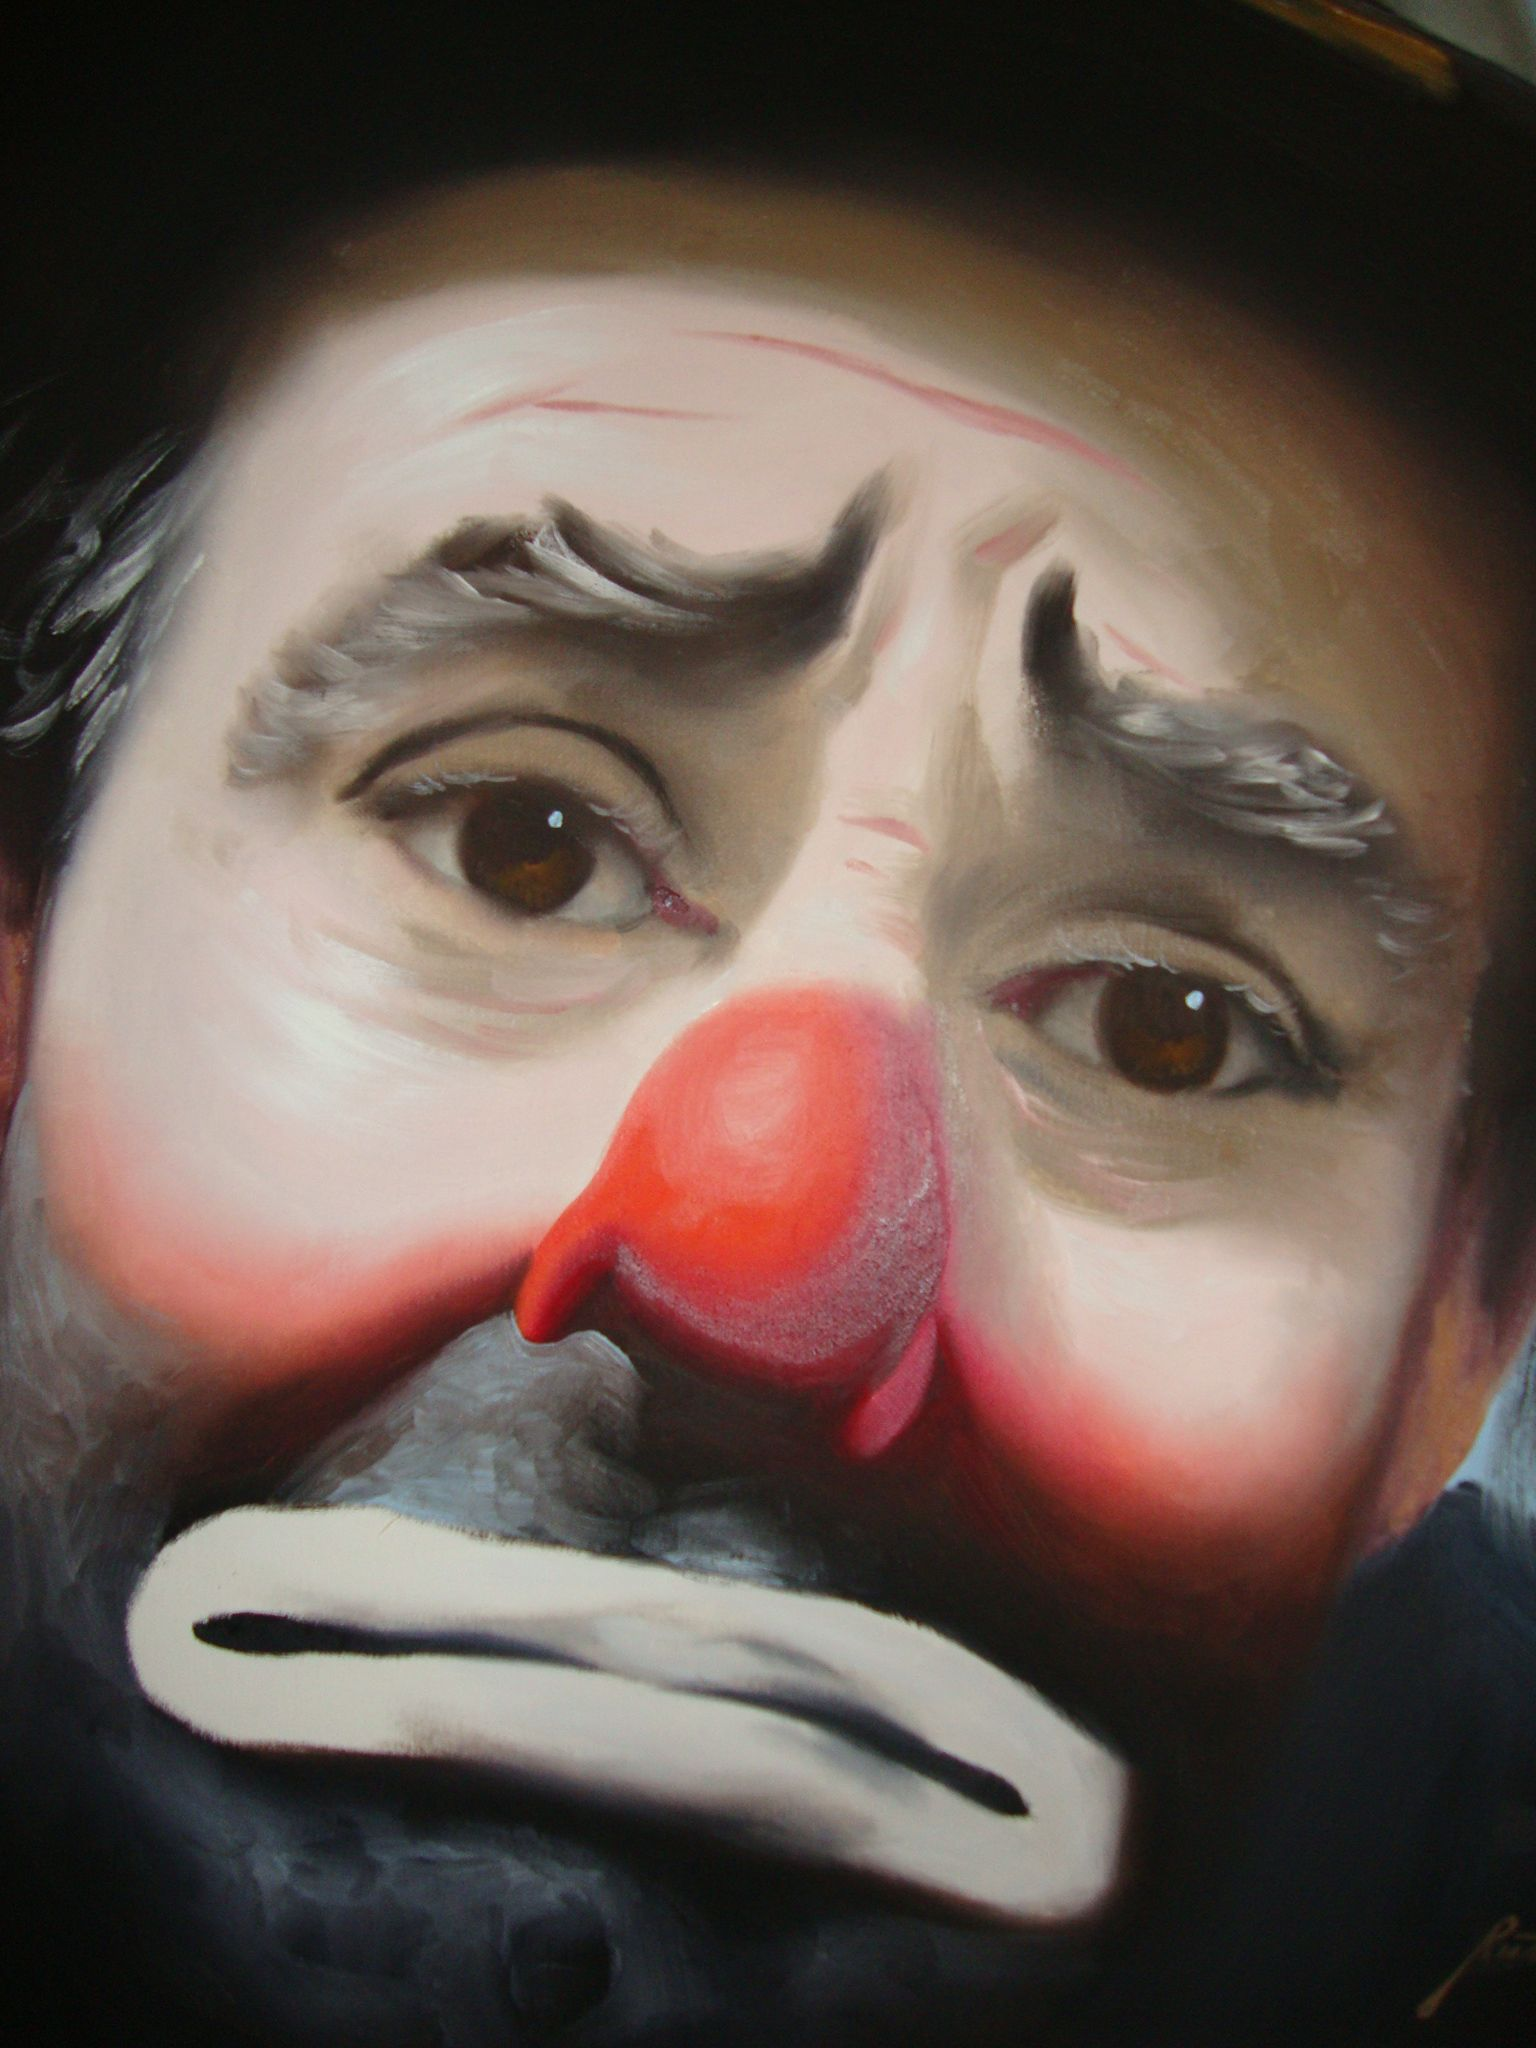 Sad A 17 Year Old Pregnant Girl Commits Suicide In River: This Is My Sad Clown Painting. It Hangs In